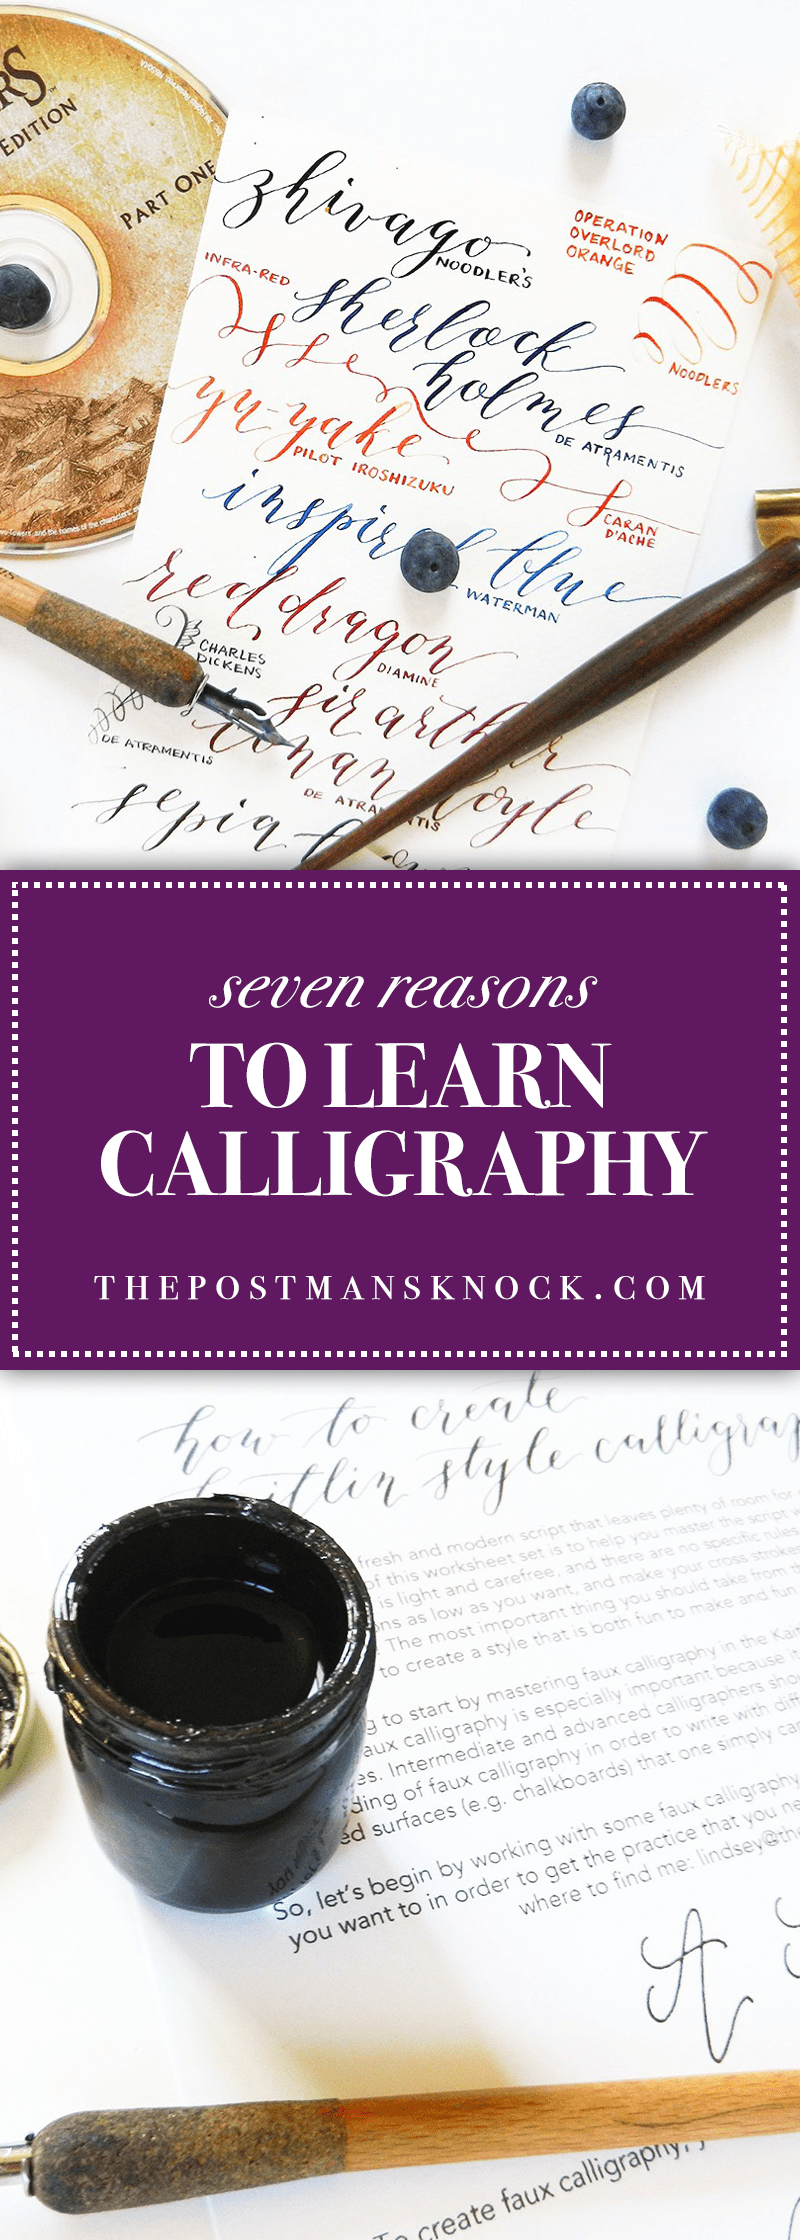 Seven reasons to learn calligraphy the postman s knock